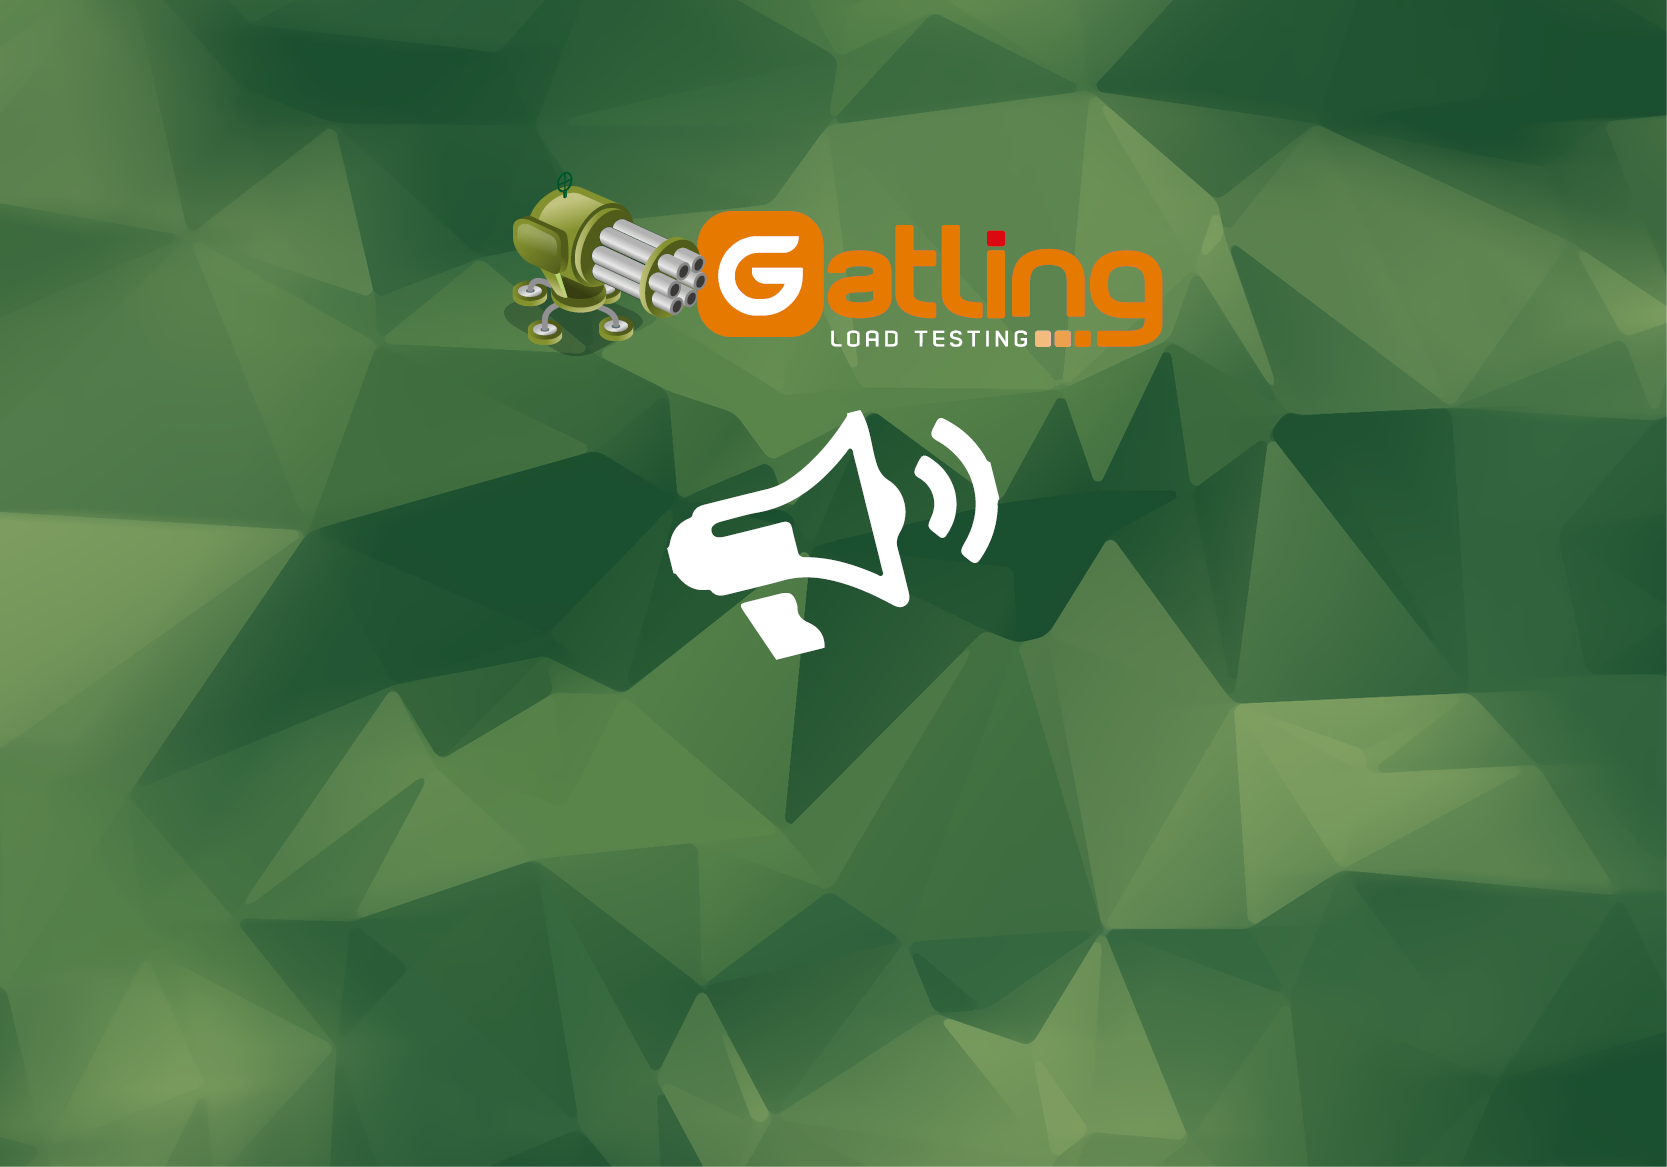 """[Press release] Gatling Corp has been given the label """"Innovative Company"""""""